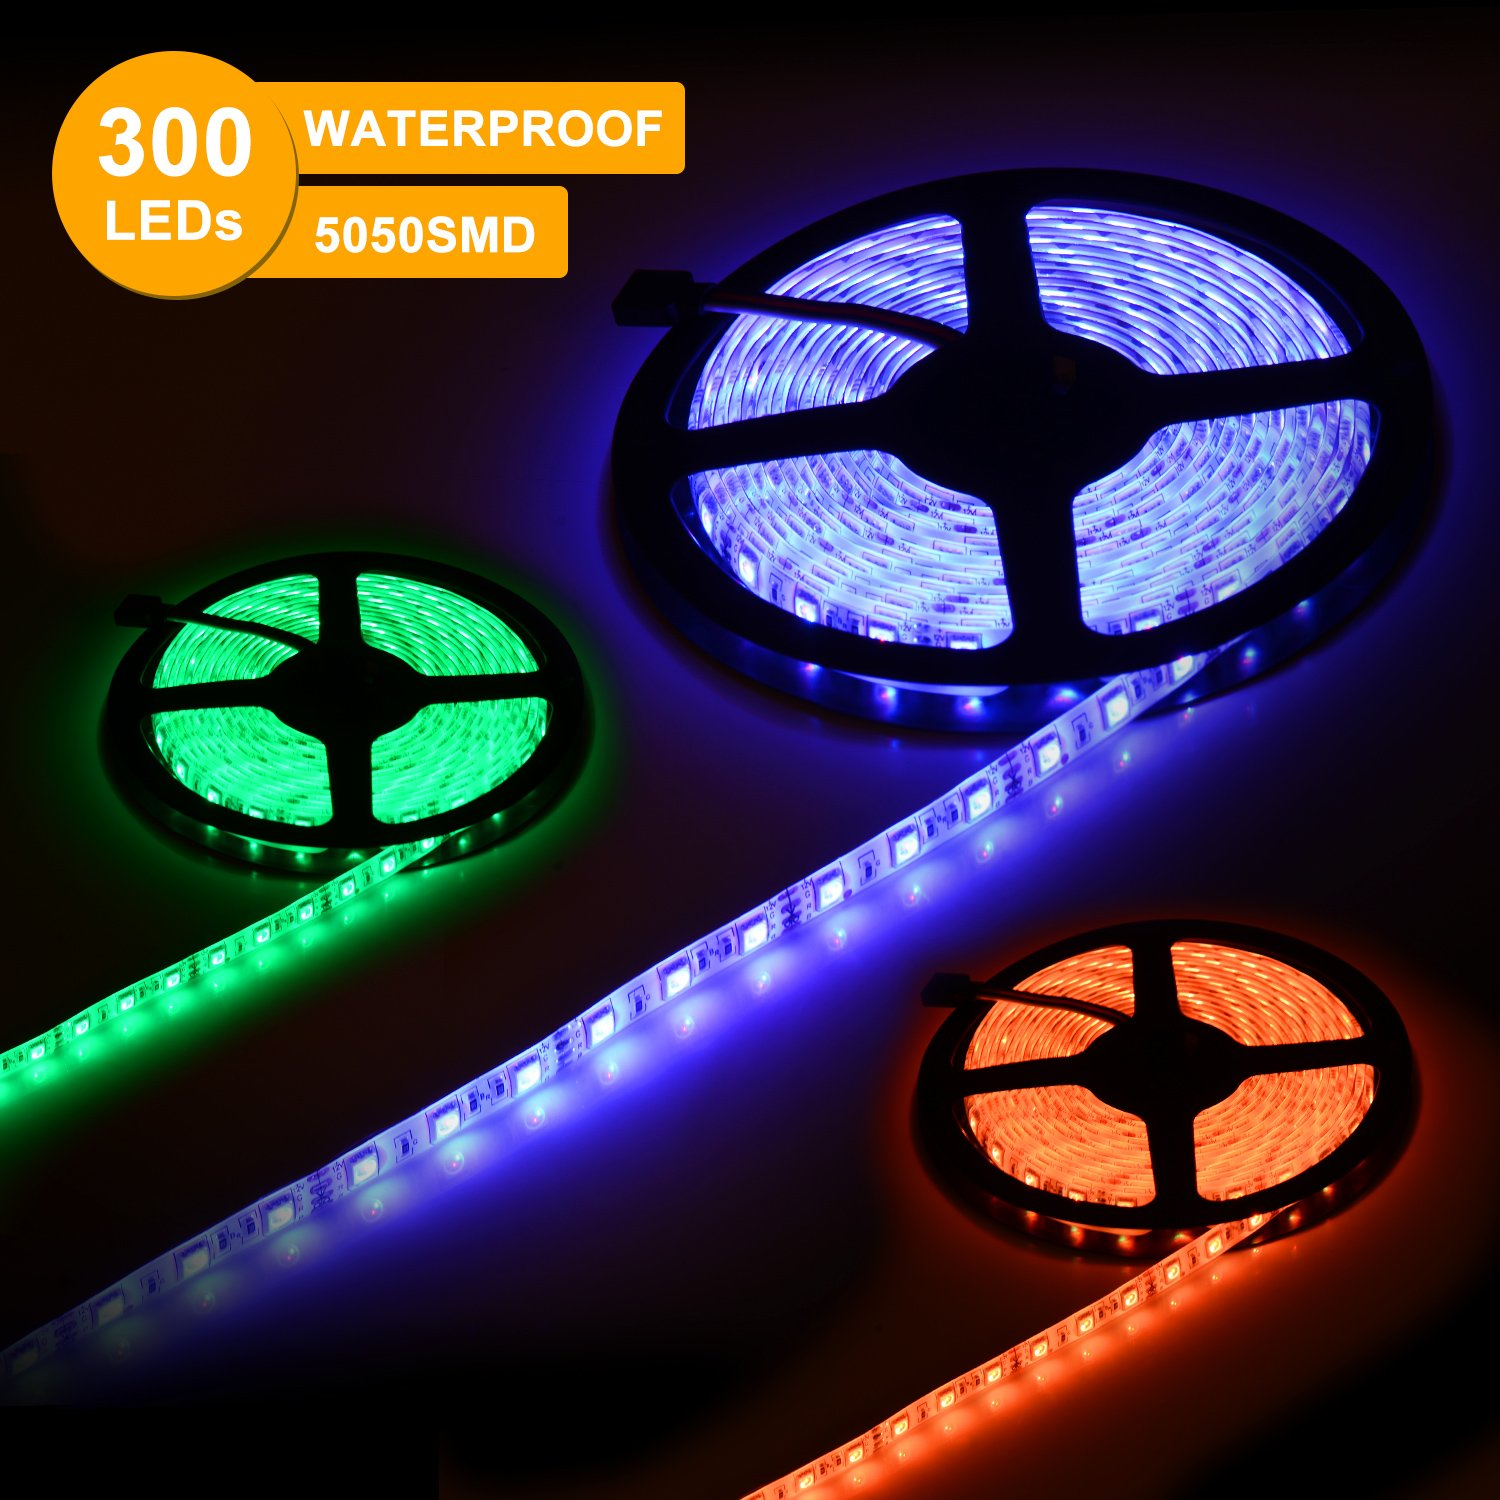 SUNNEST Music Activated LED Strip Light Kit, Waterproof 16.4ft 300 LEDs RGB SMD 5050 LED Tape with Remote Controller, IR Receiver, Power Supply, Sync with Music by SUNNEST (Image #4)